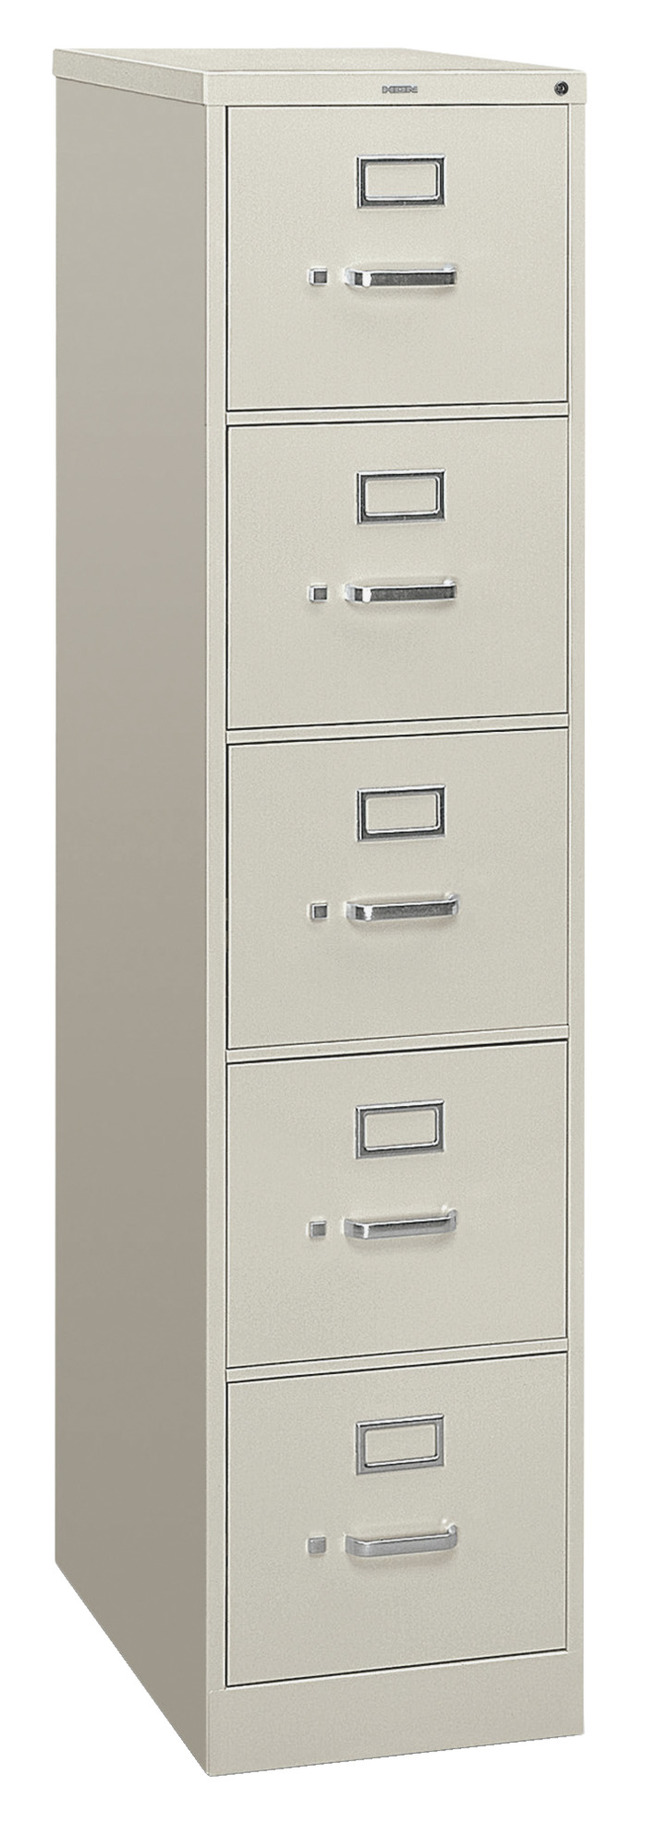 Filing Cabinets Supplies, Item Number 1061447